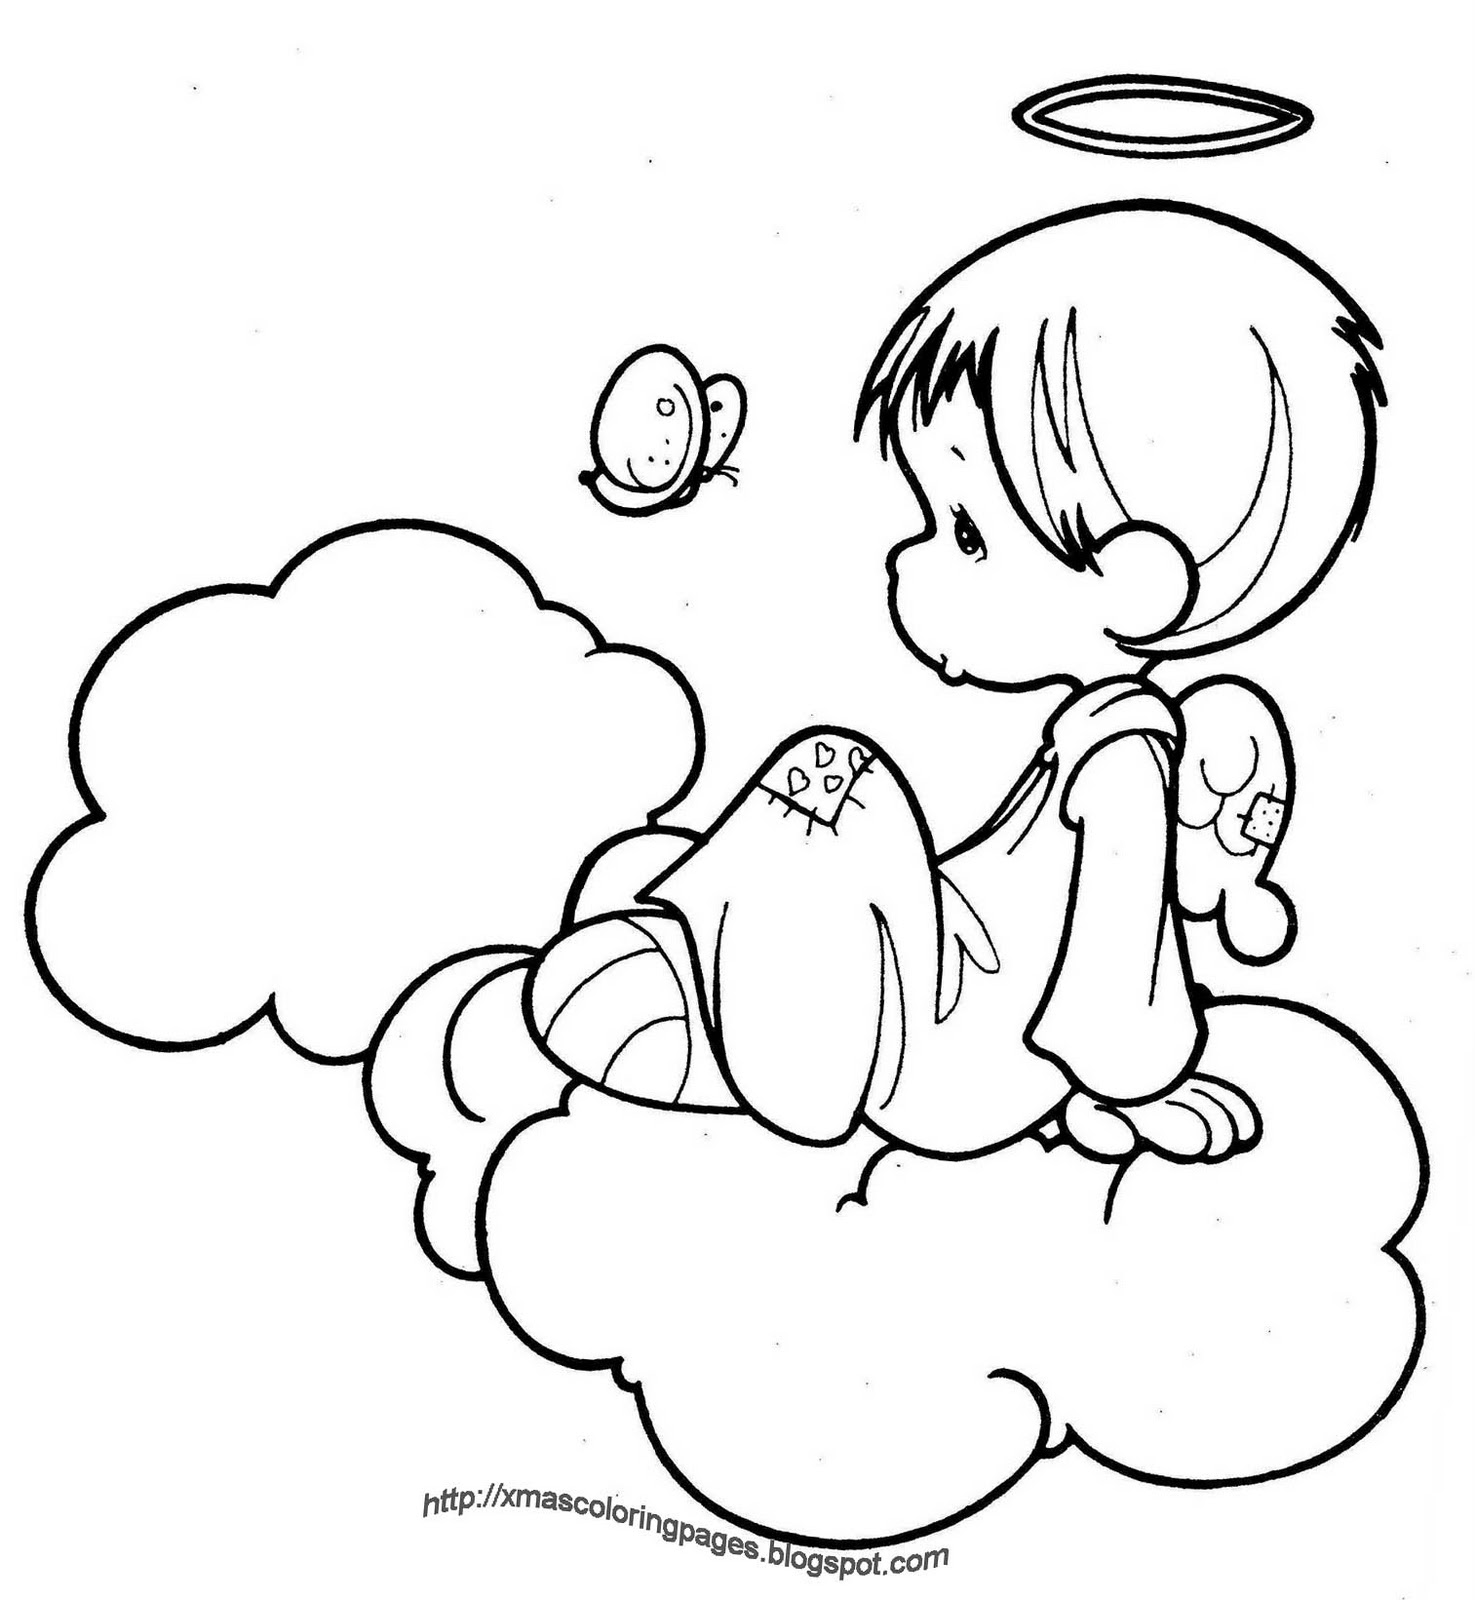 Xmas coloring pages for Angel coloring book pages